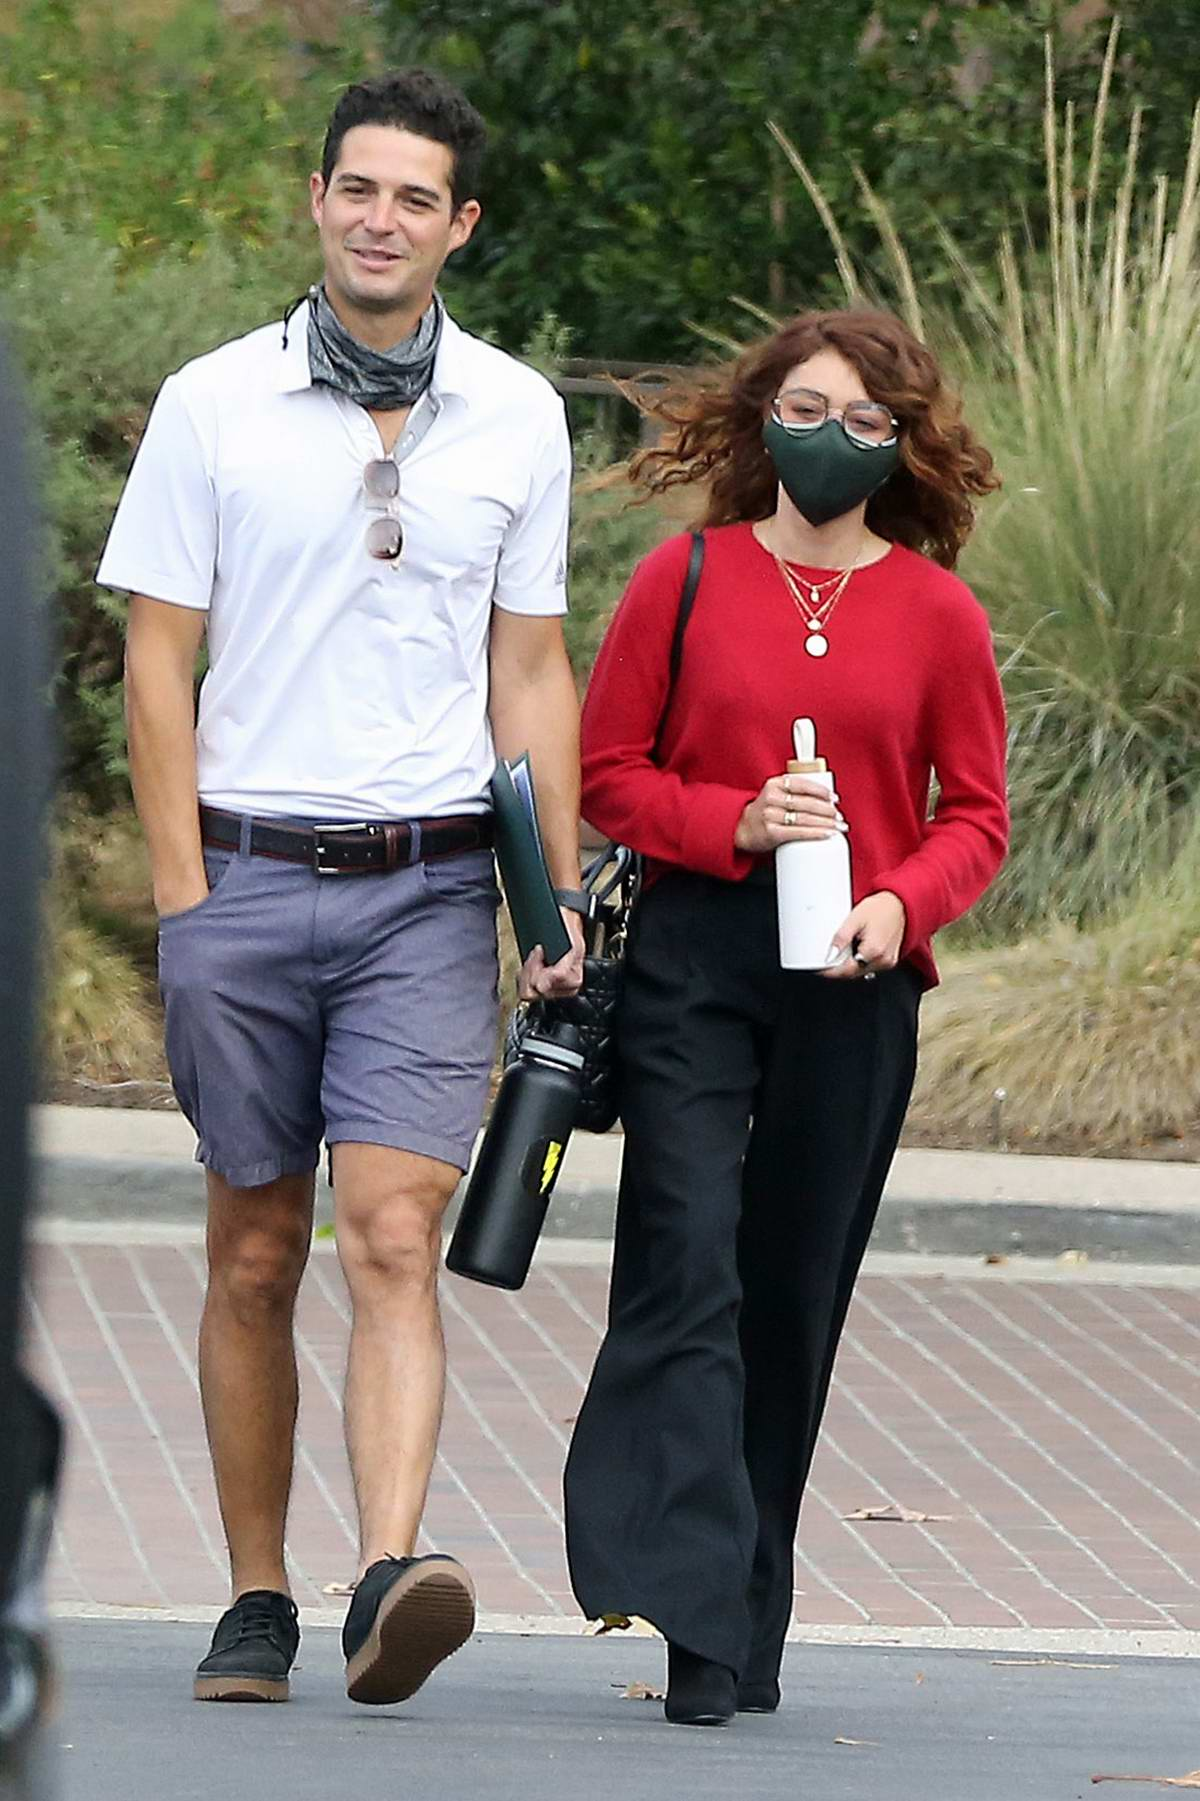 Sarah Hyland checks out wedding venues with her fiancé Wells Adam in Los Angeles